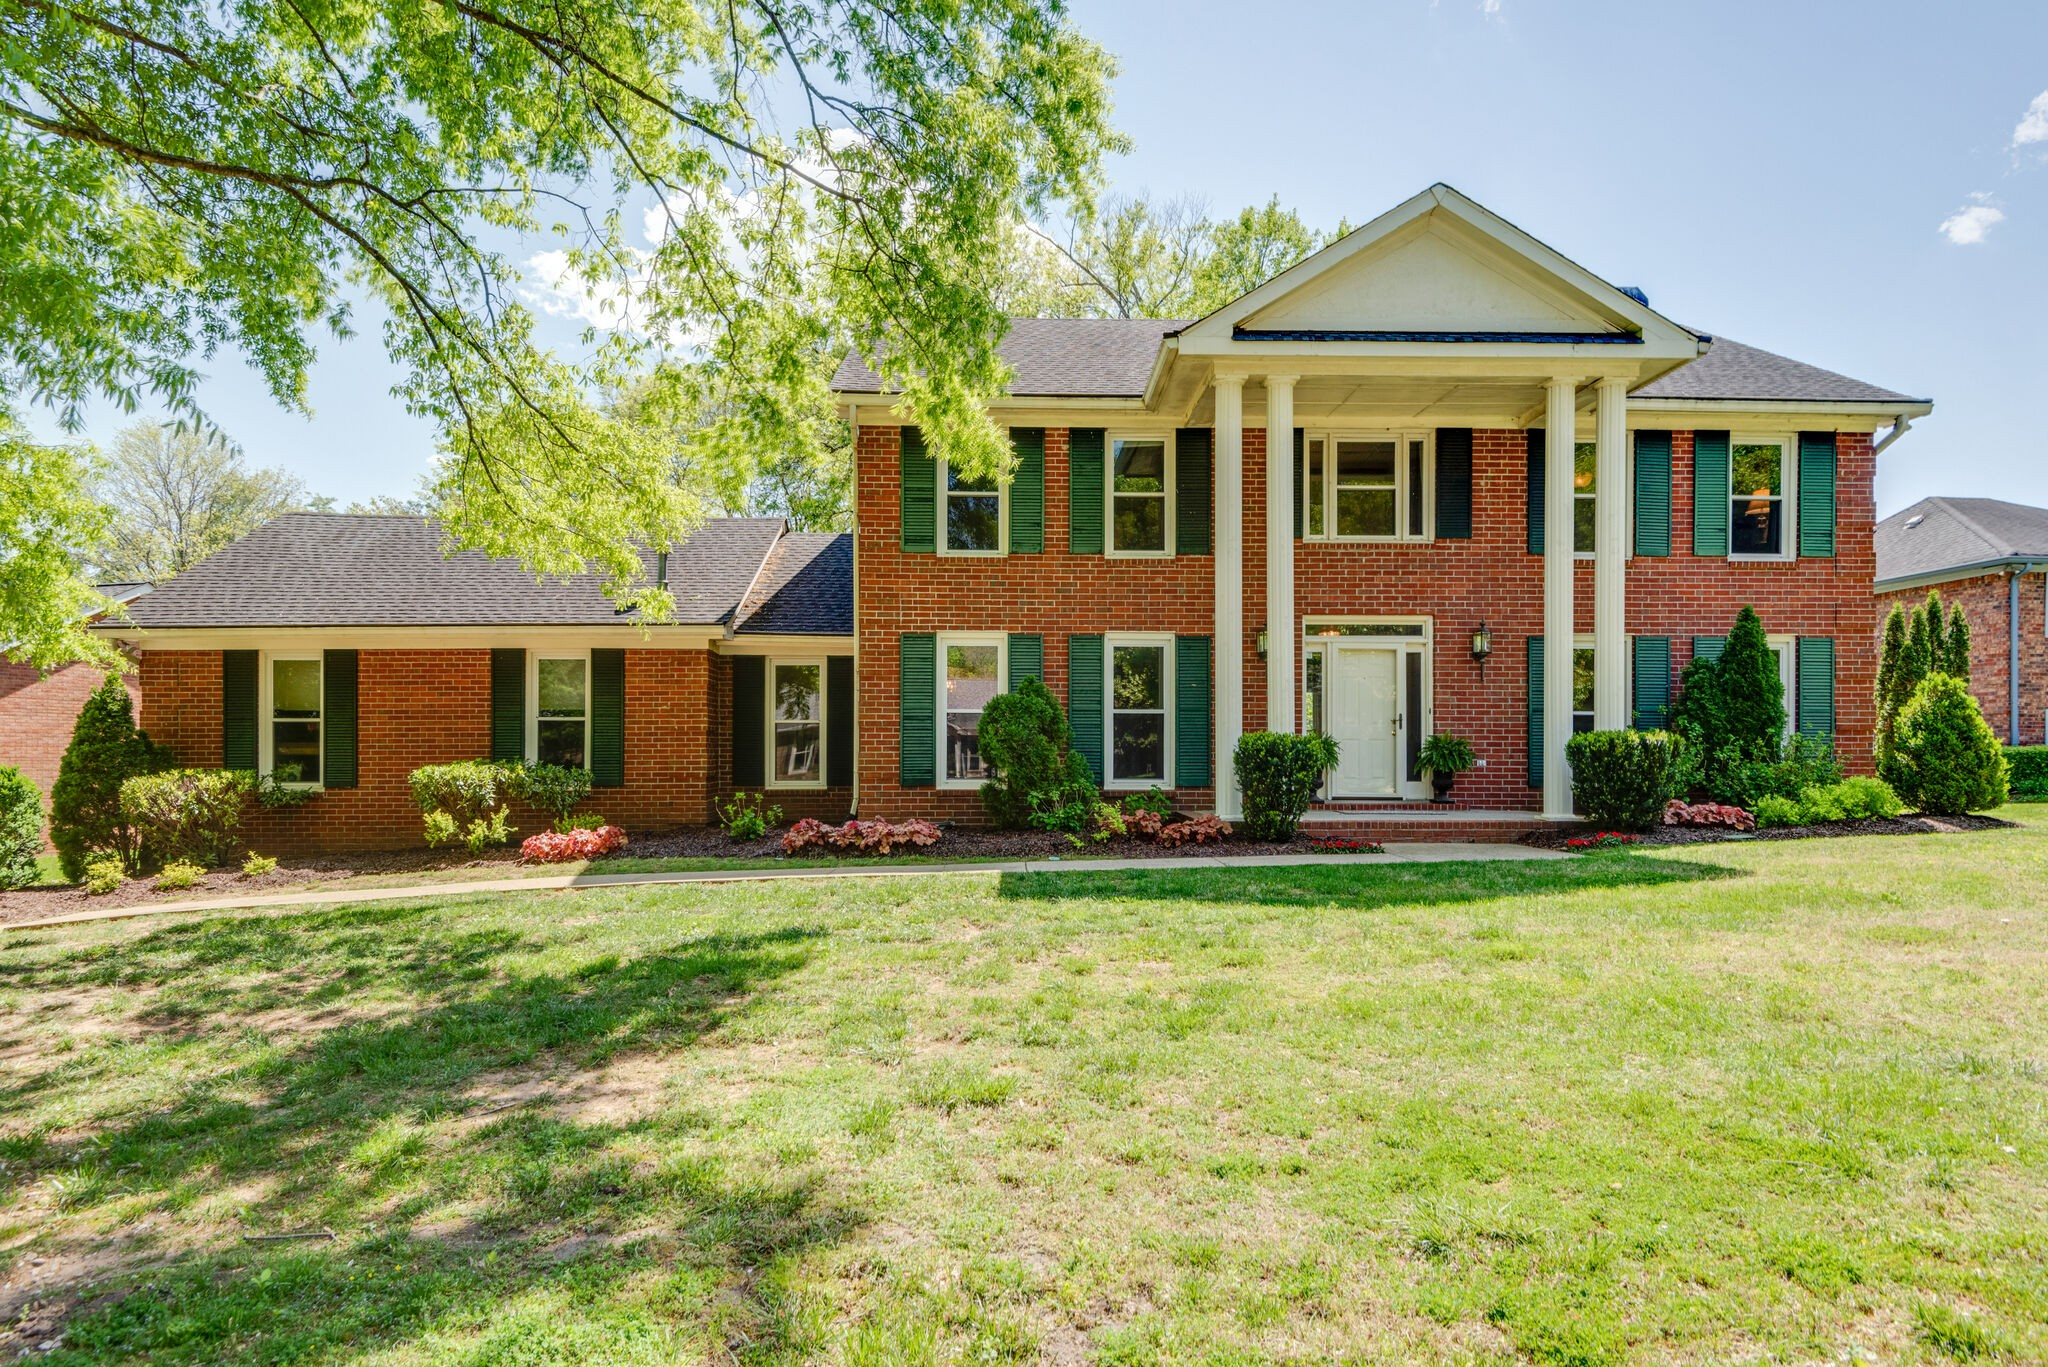 609 Spring House Ct Property Photo - Brentwood, TN real estate listing